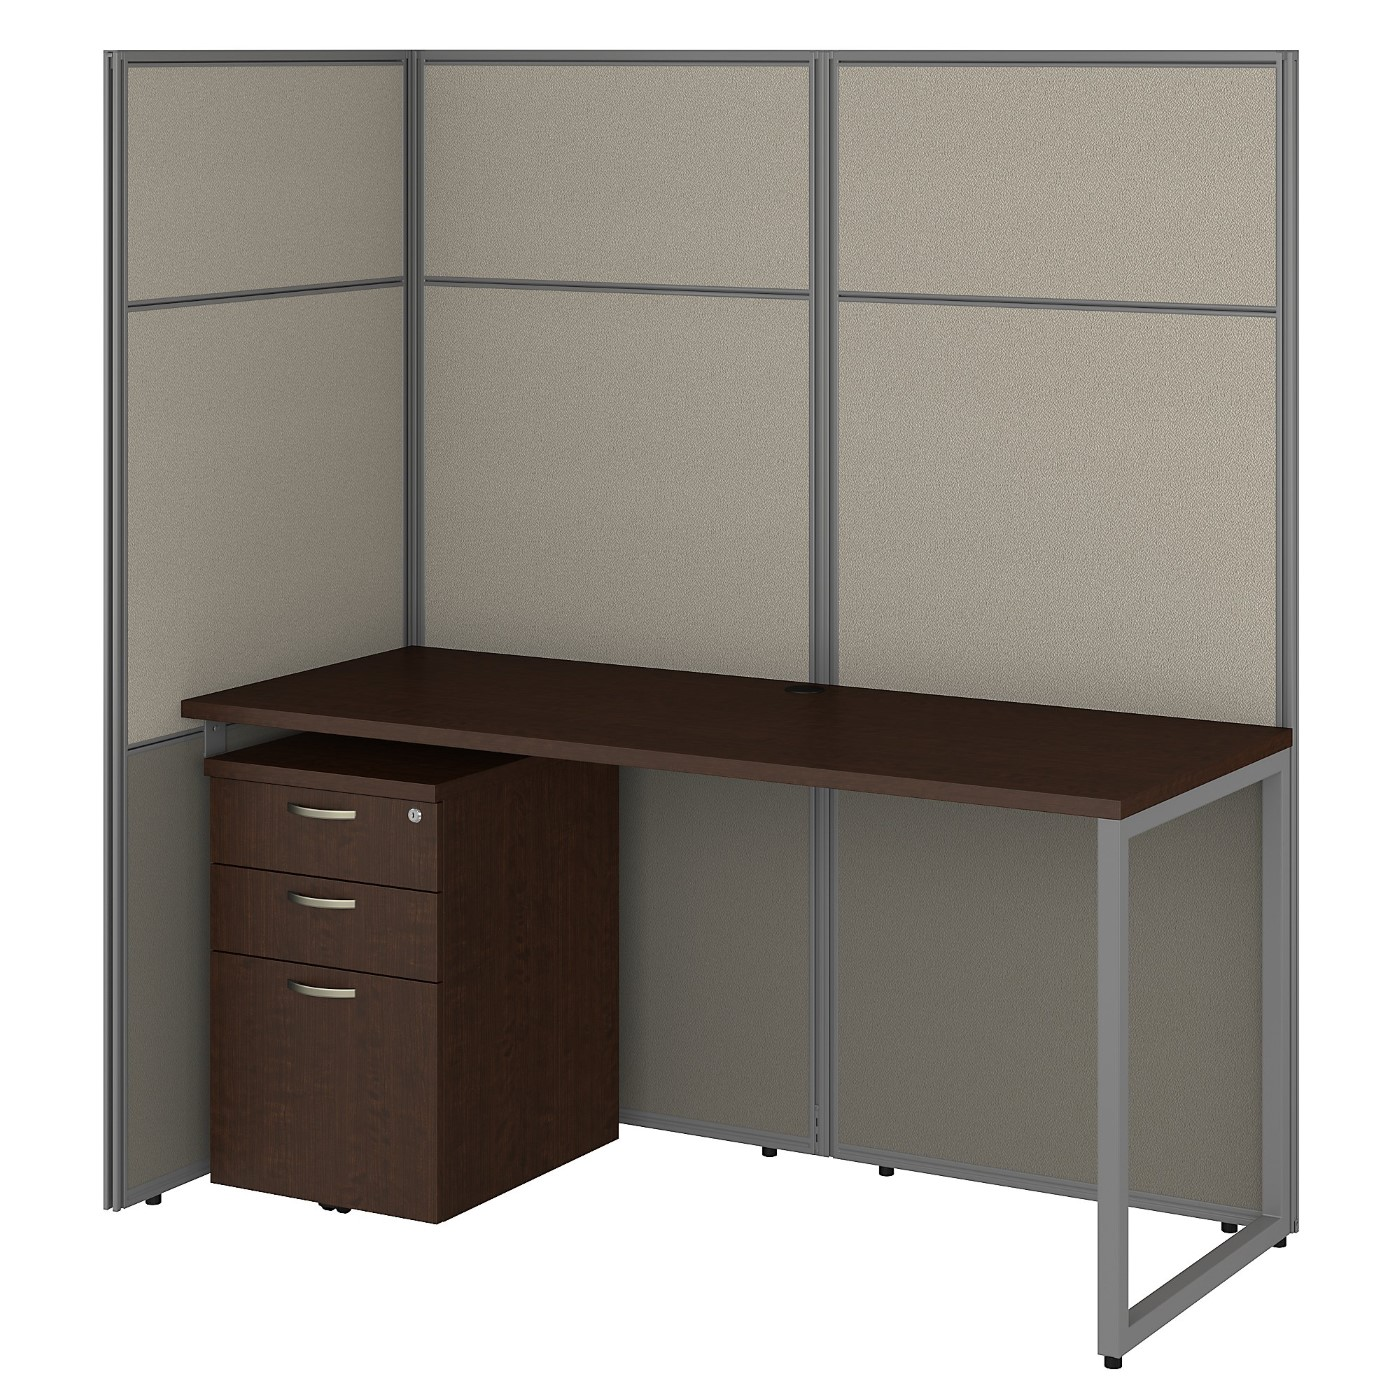 BUSH BUSINESS FURNITURE EASY OFFICE 60W CUBICLE DESK WITH FILE CABINET AND 66H OPEN PANELS WORKSTATION. FREE SHIPPING 30H x 72L x 72W.